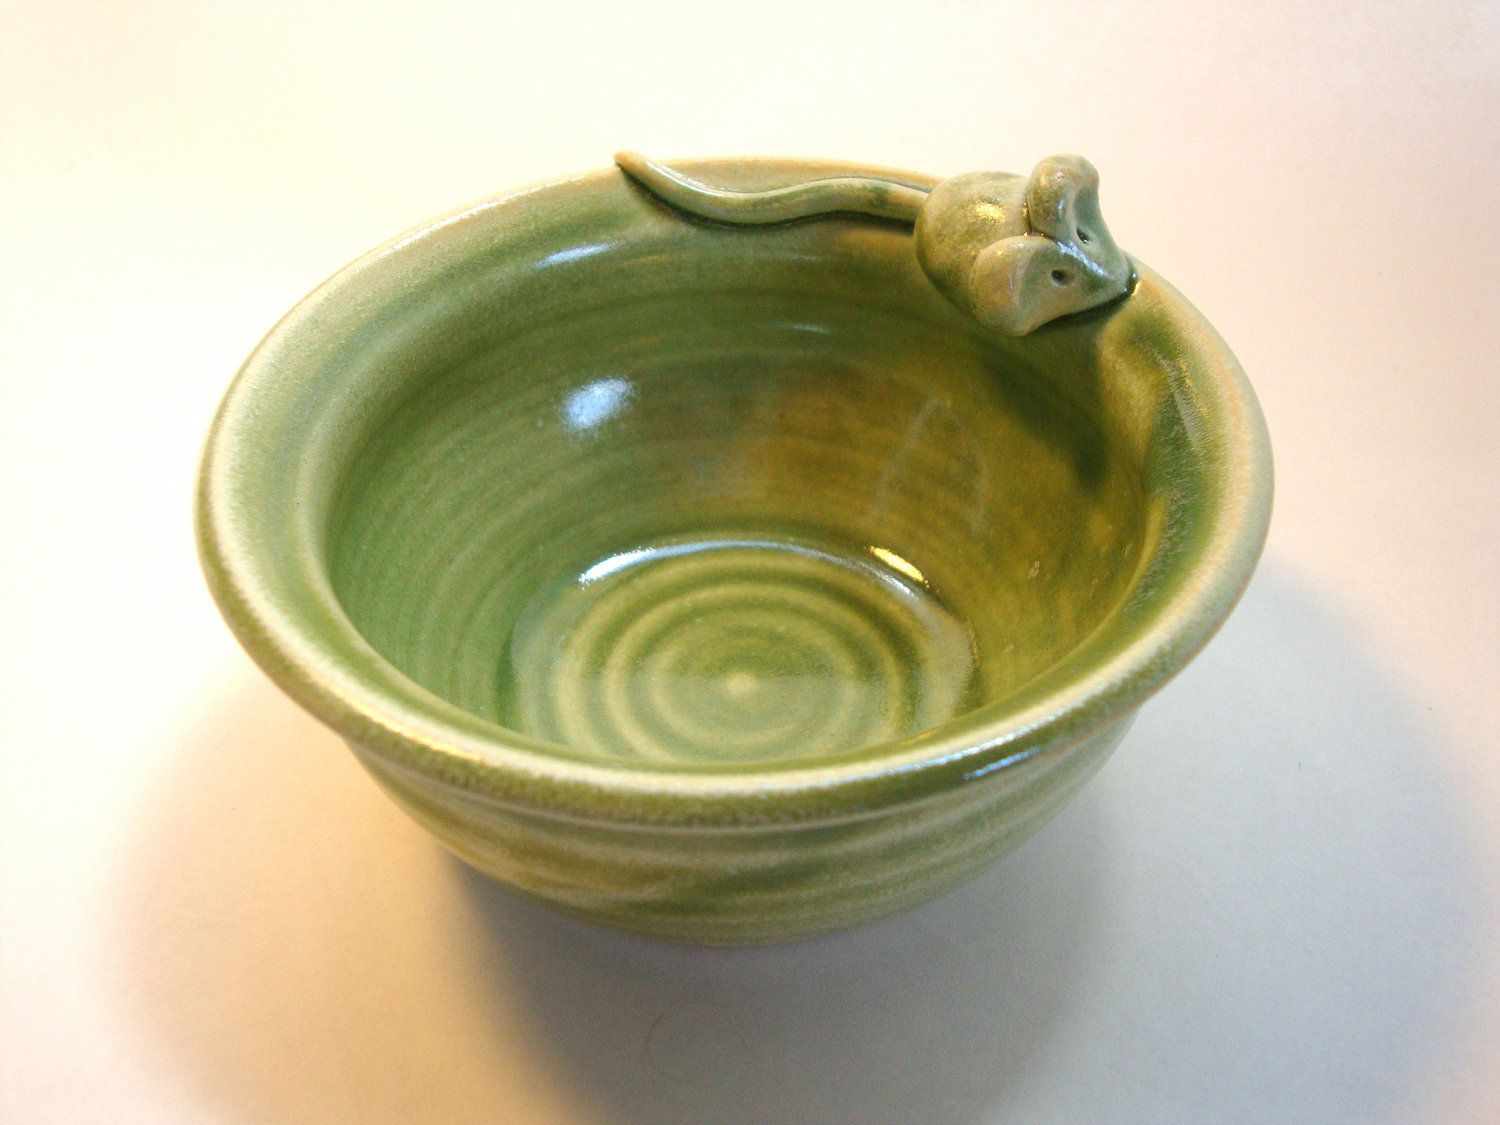 Mouse Bowl in Spearmint Green by village pottery pei by VillagePottery on Etsy